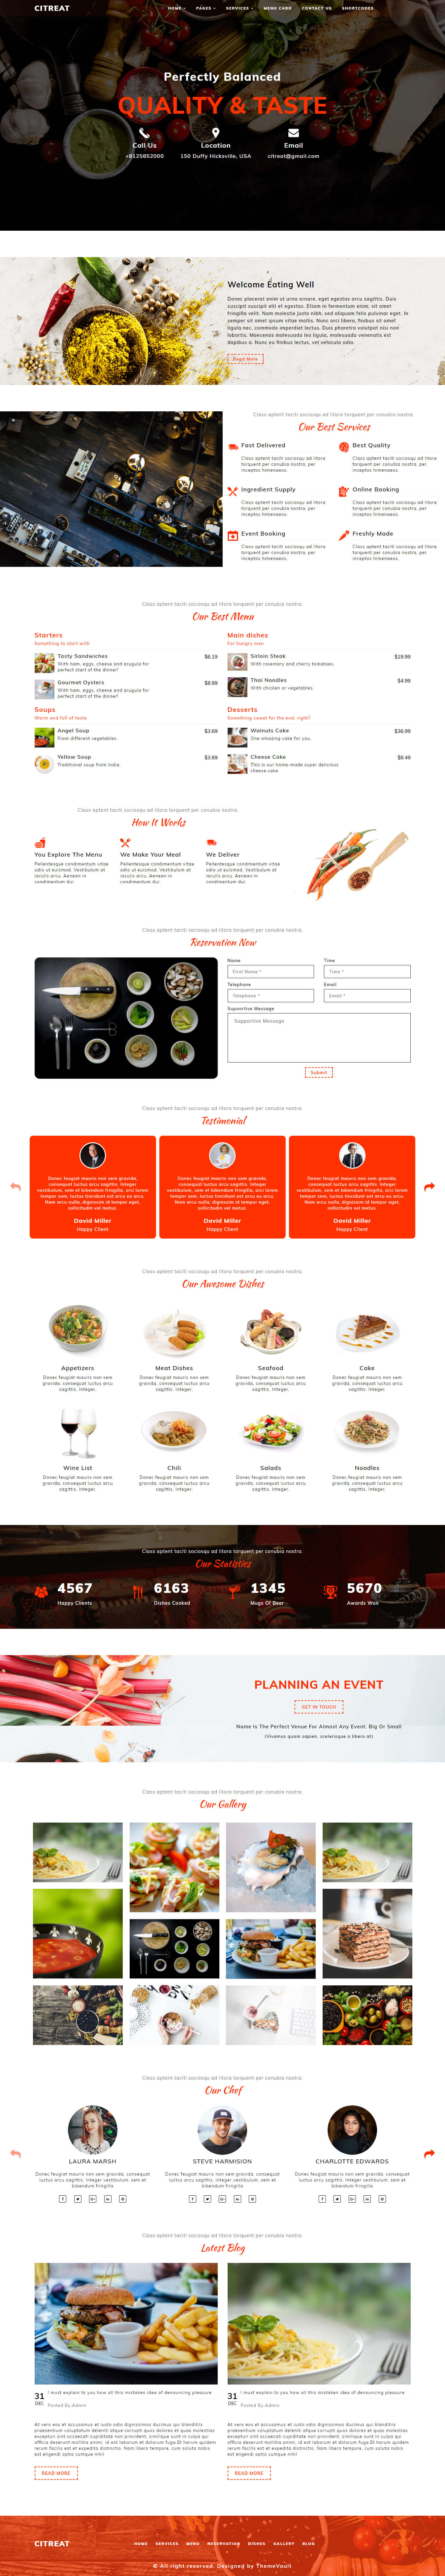 Citreat –  HTMl5 Restaurant Website Layout Template